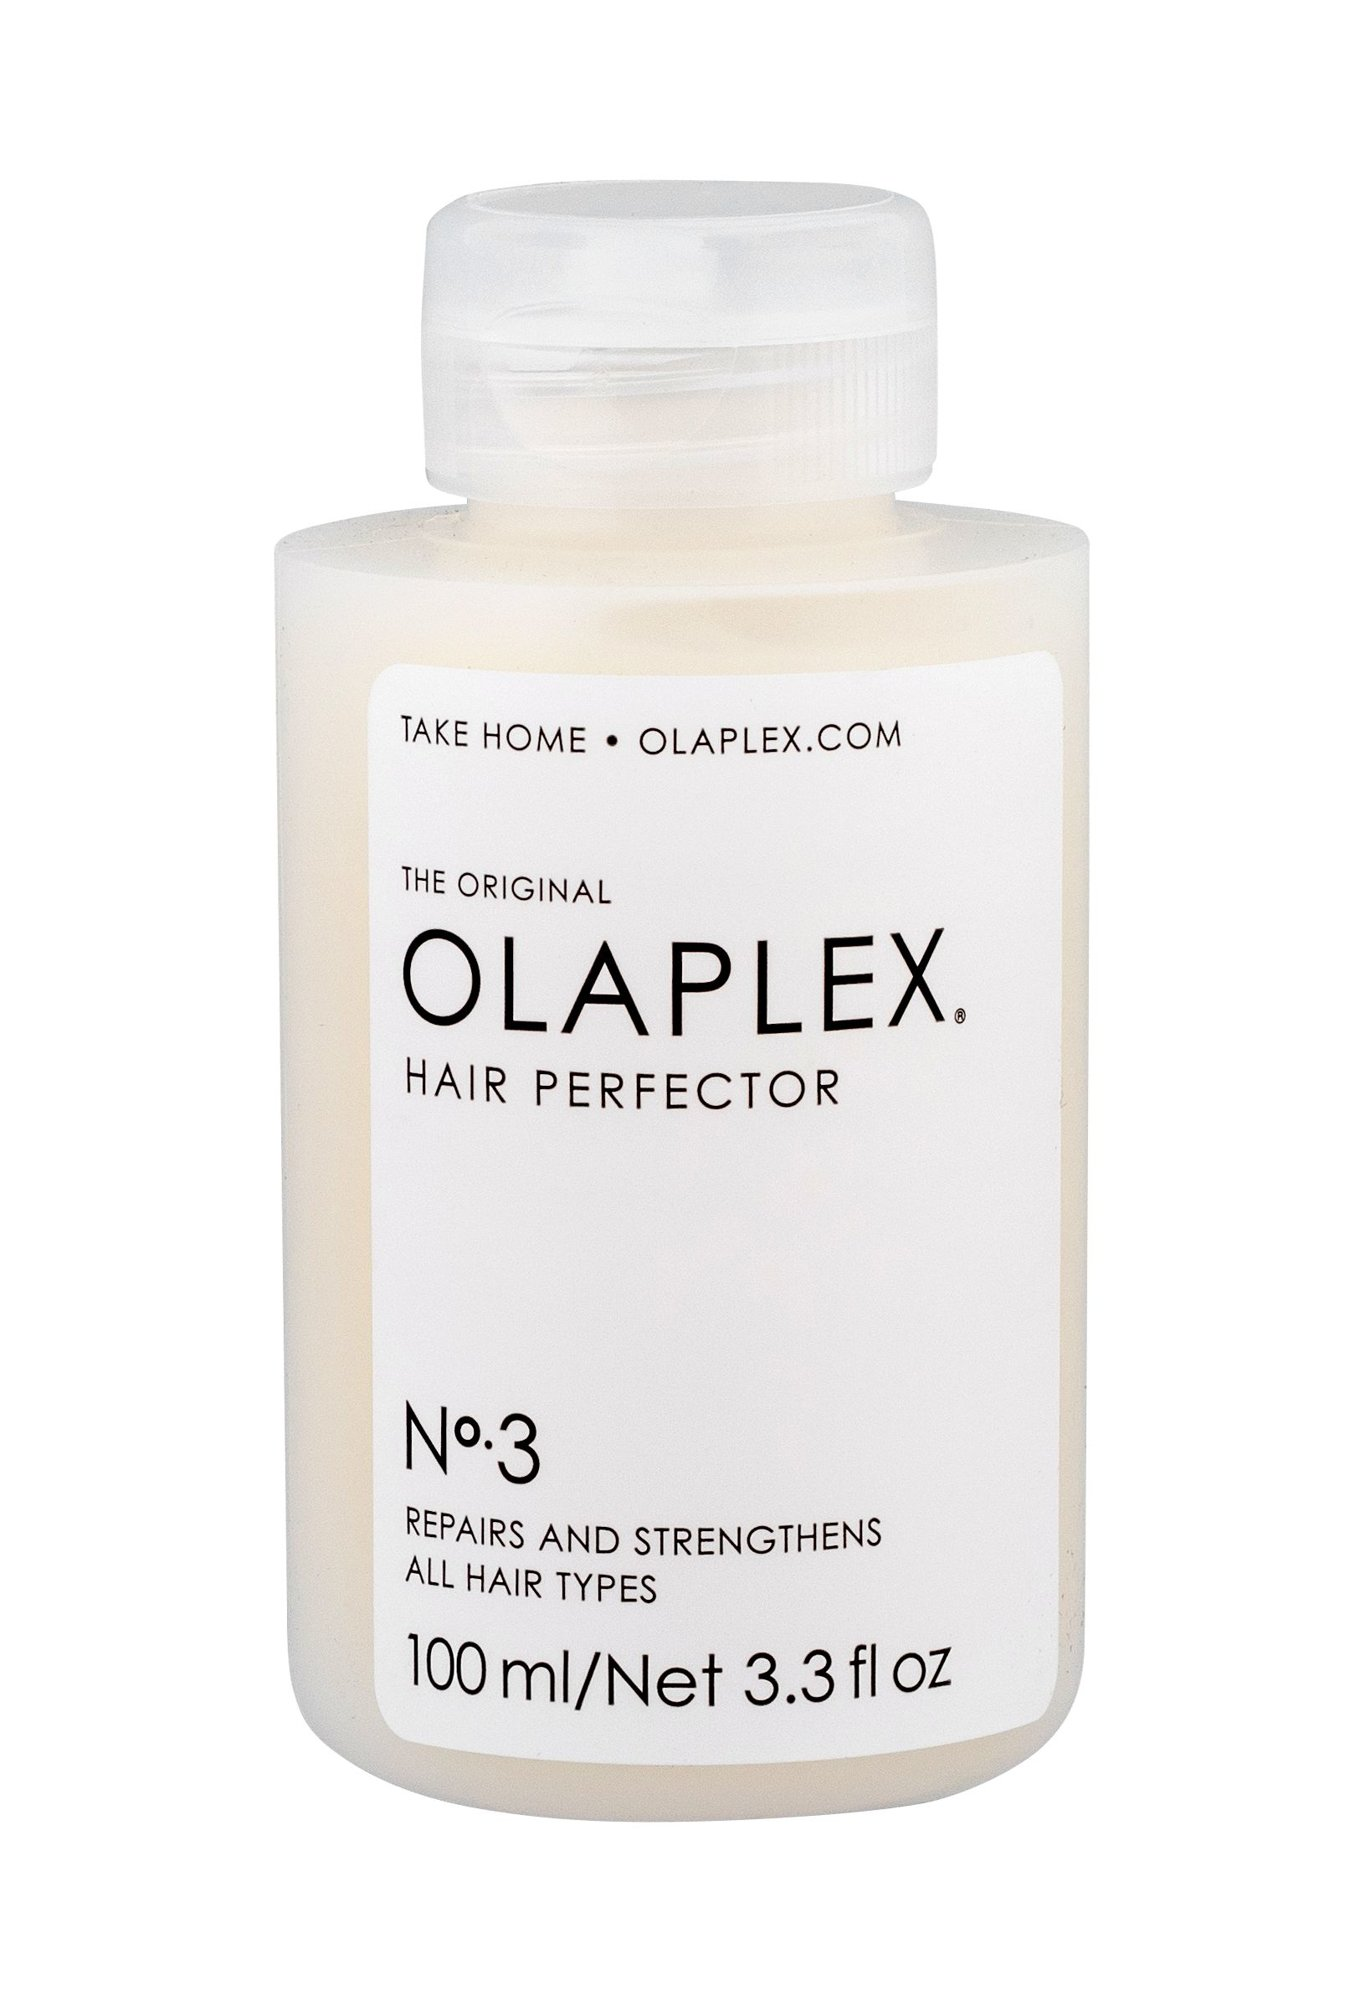 Olaplex Hair Perfector No. 3 Cosmetic 100ml